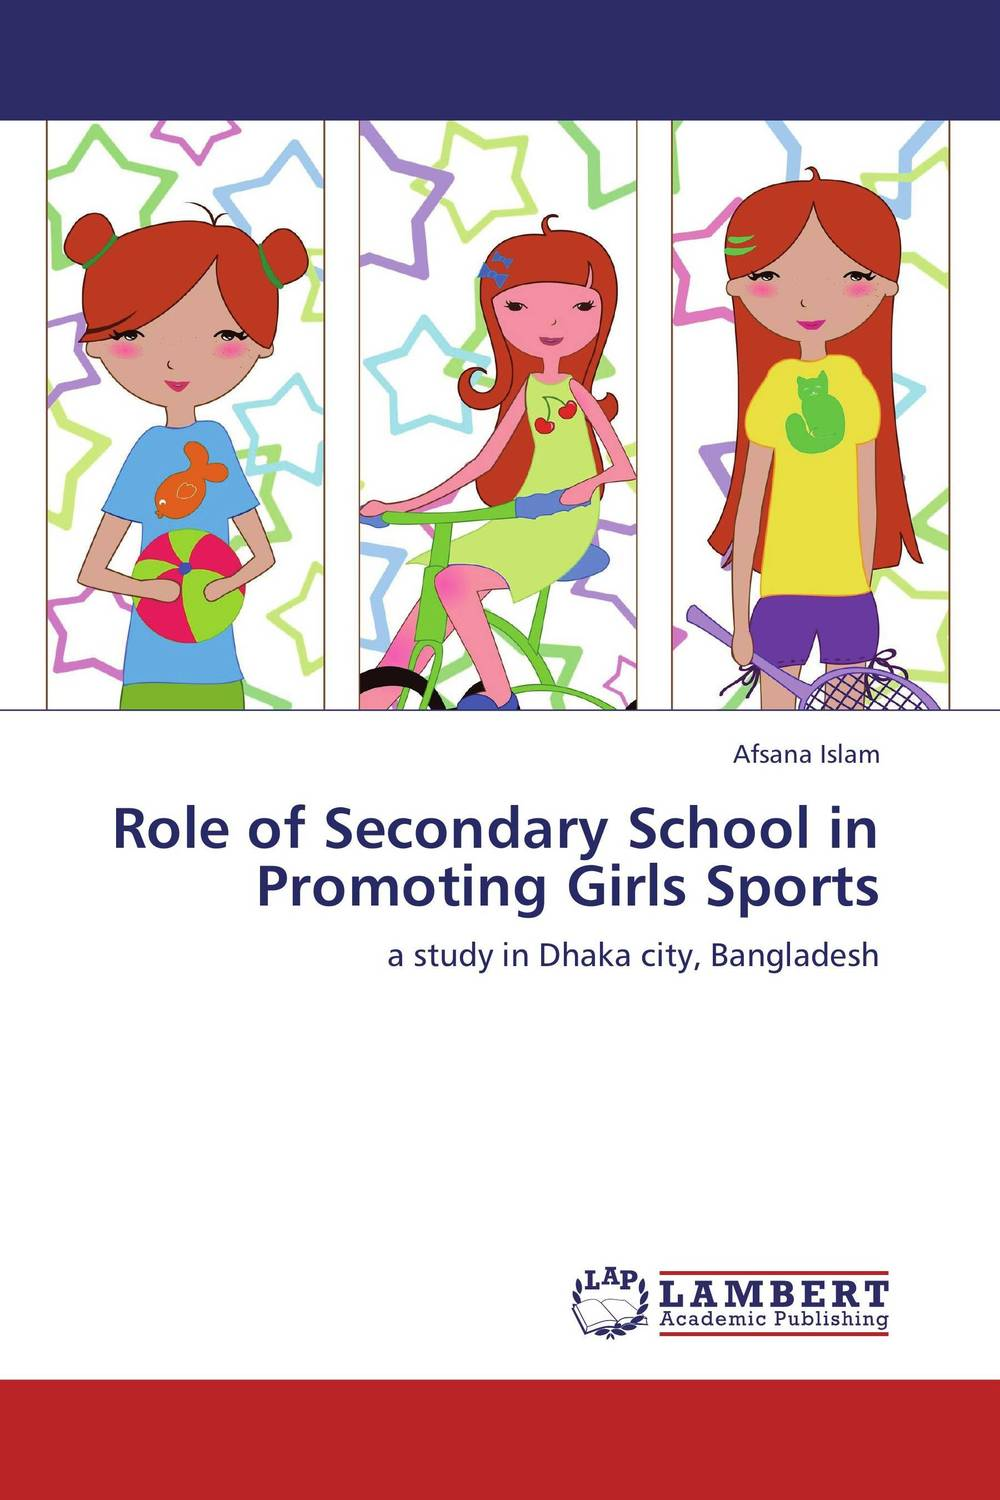 Role of Secondary School in Promoting Girls Sports role of school leadership in promoting moral integrity among students